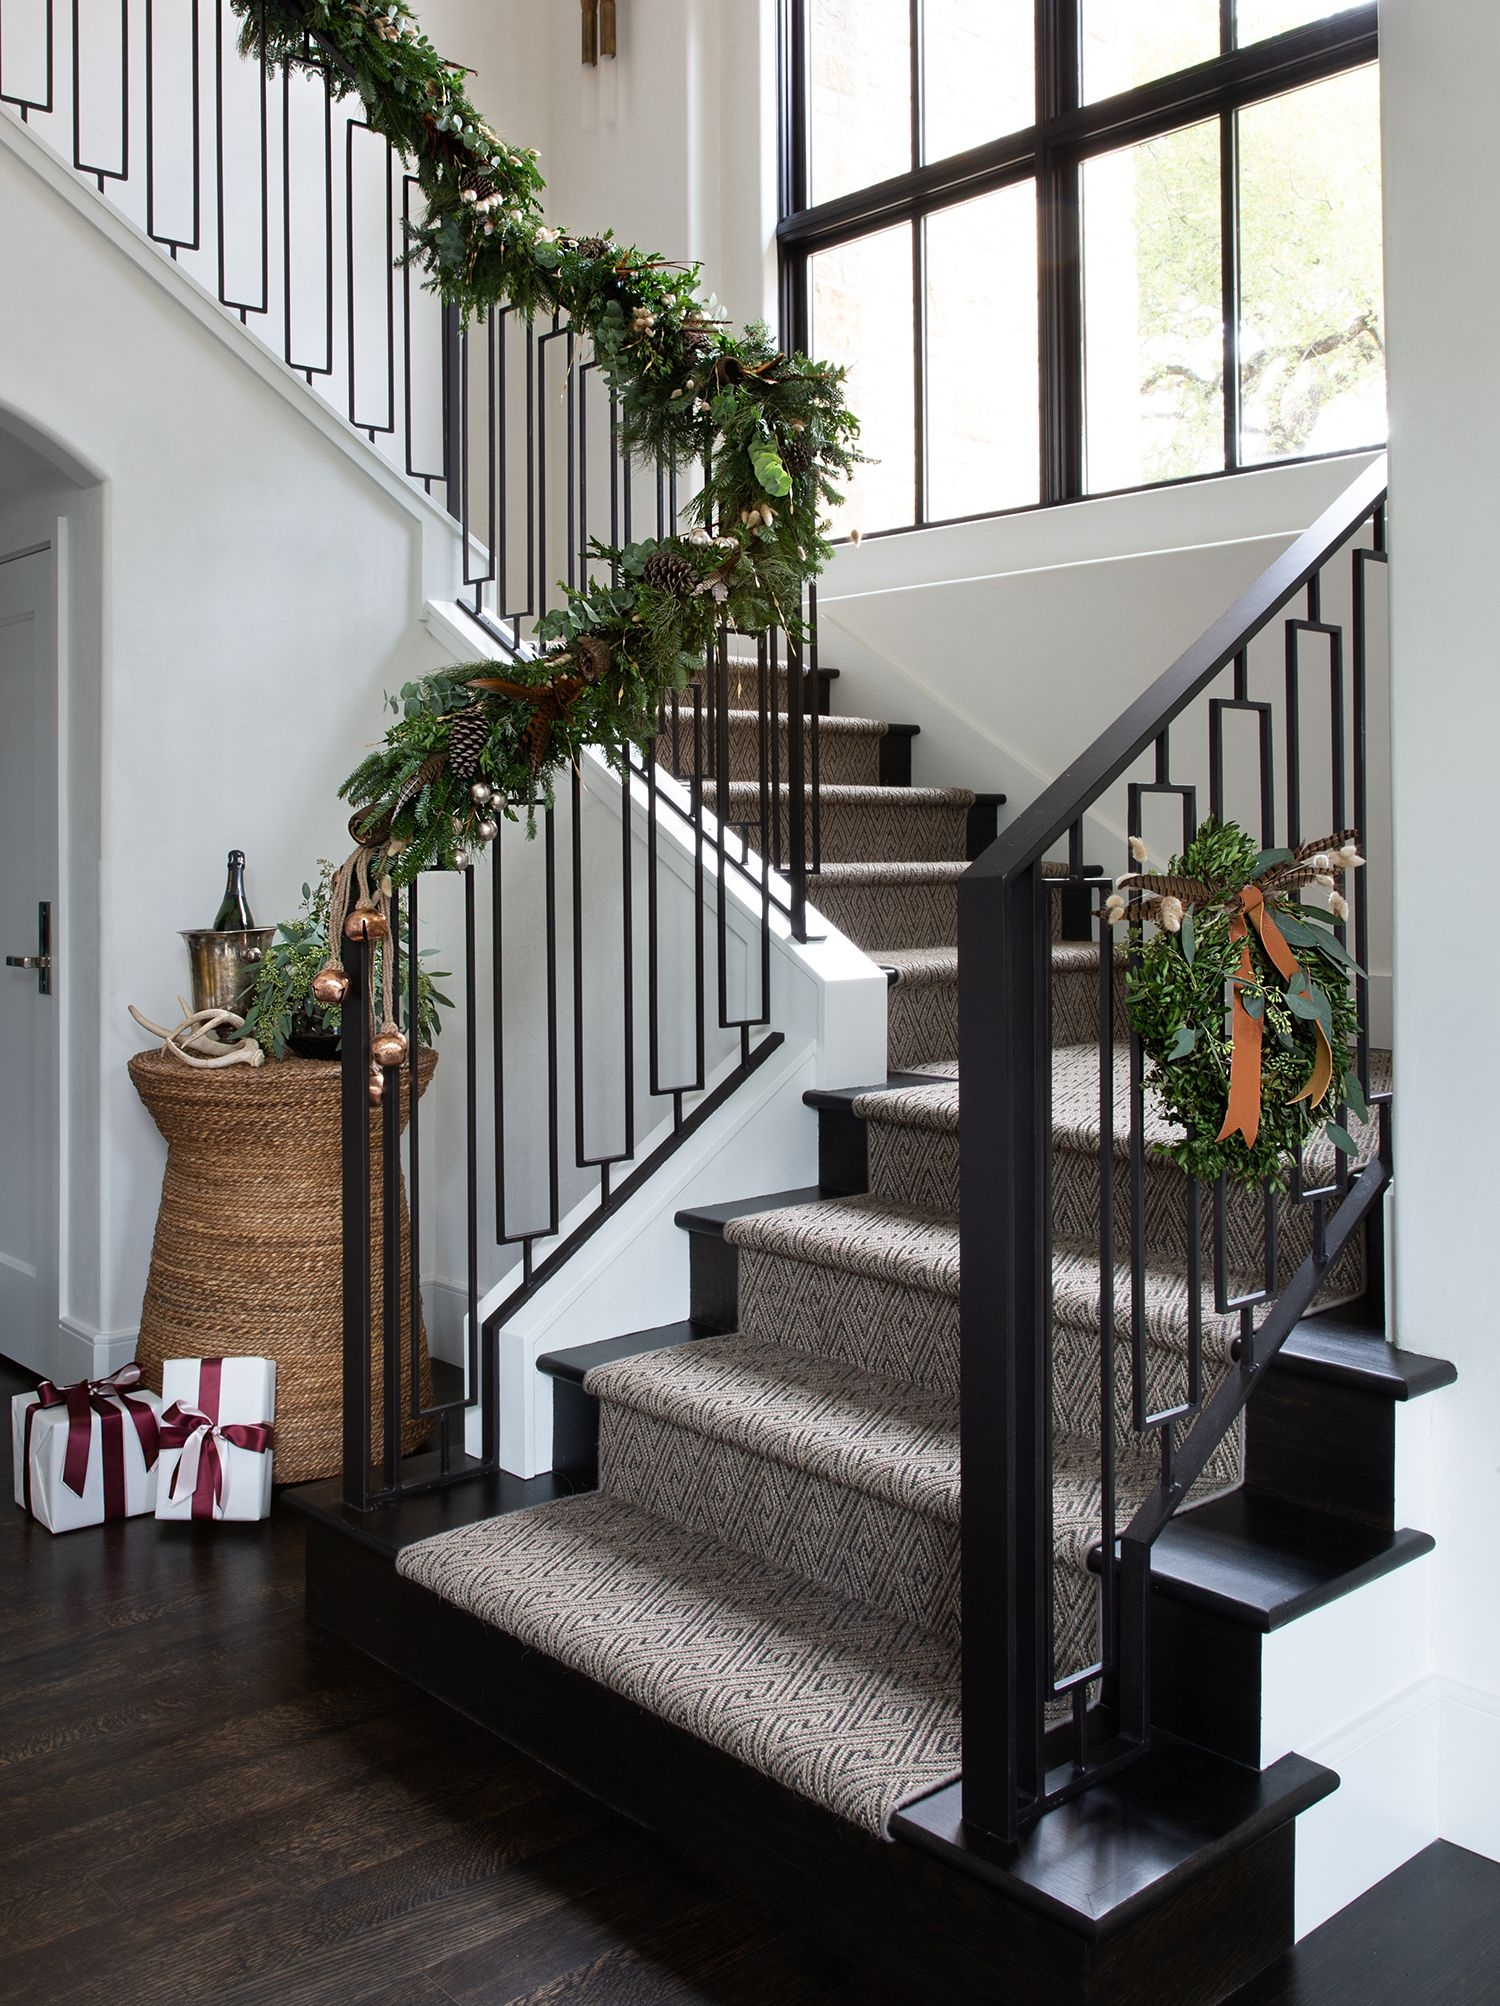 15 Best Christmas Staircase Decorating Ideas Xmas Stair Decor 2019   Best Stair Railing Design   Stainless   Outside   Staircase   Simple   Handrail